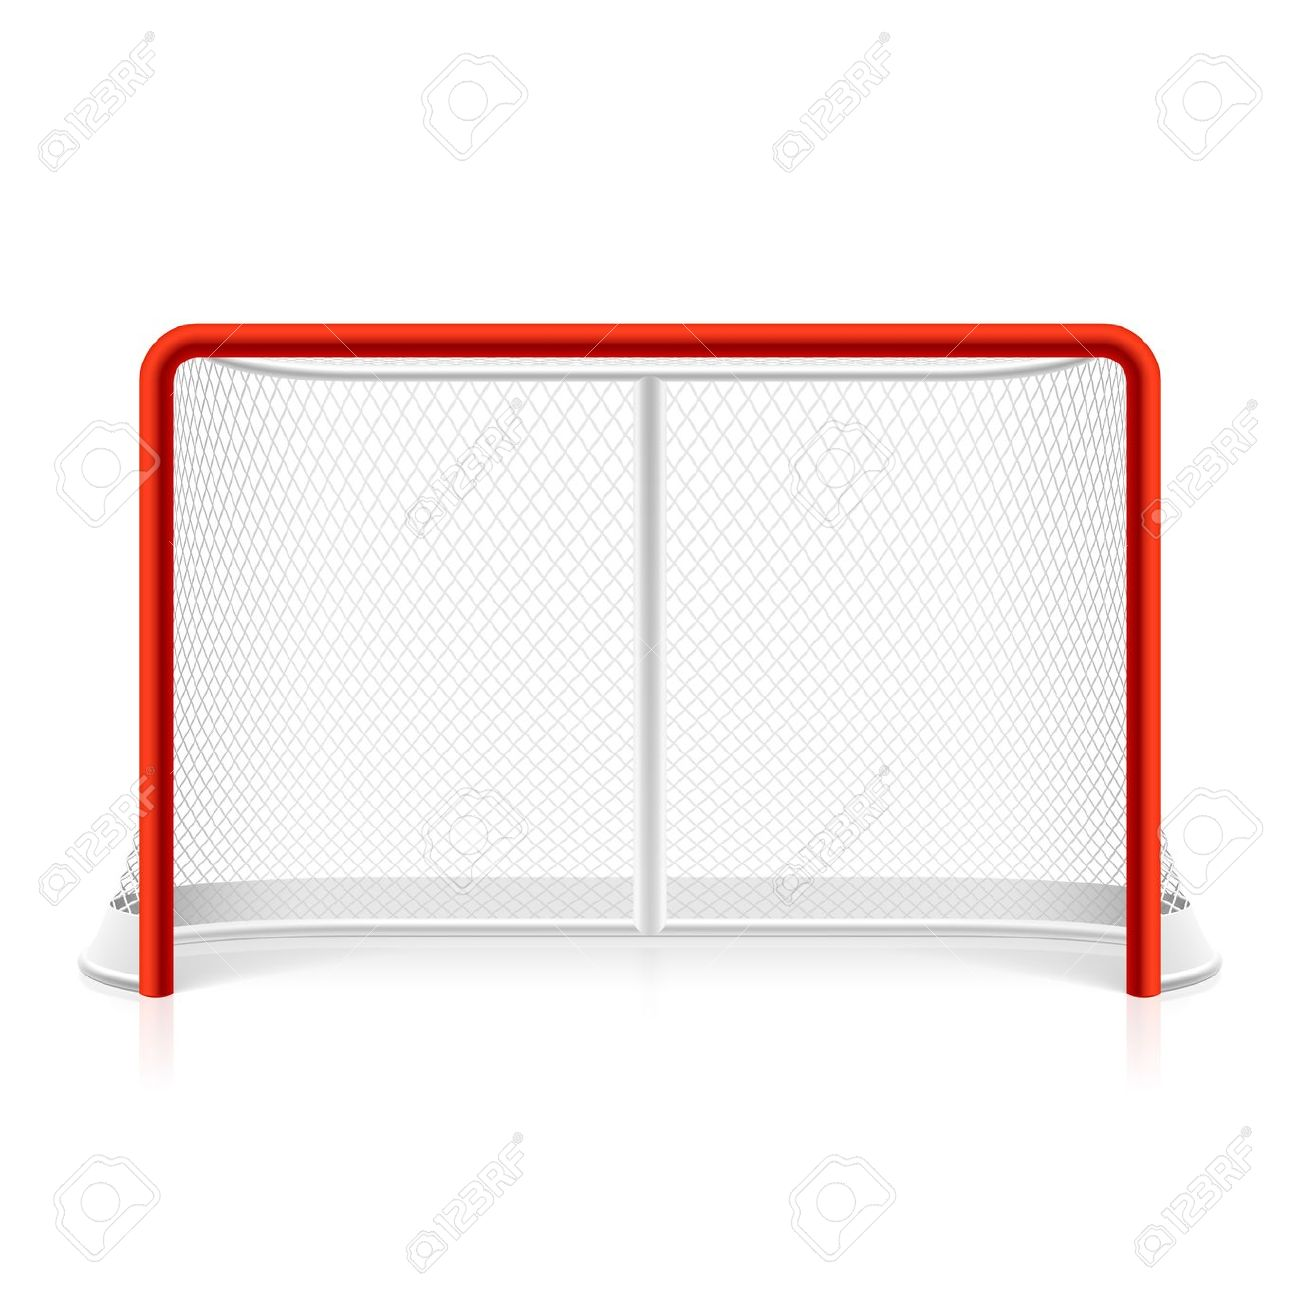 Hockey Goal Clipart.